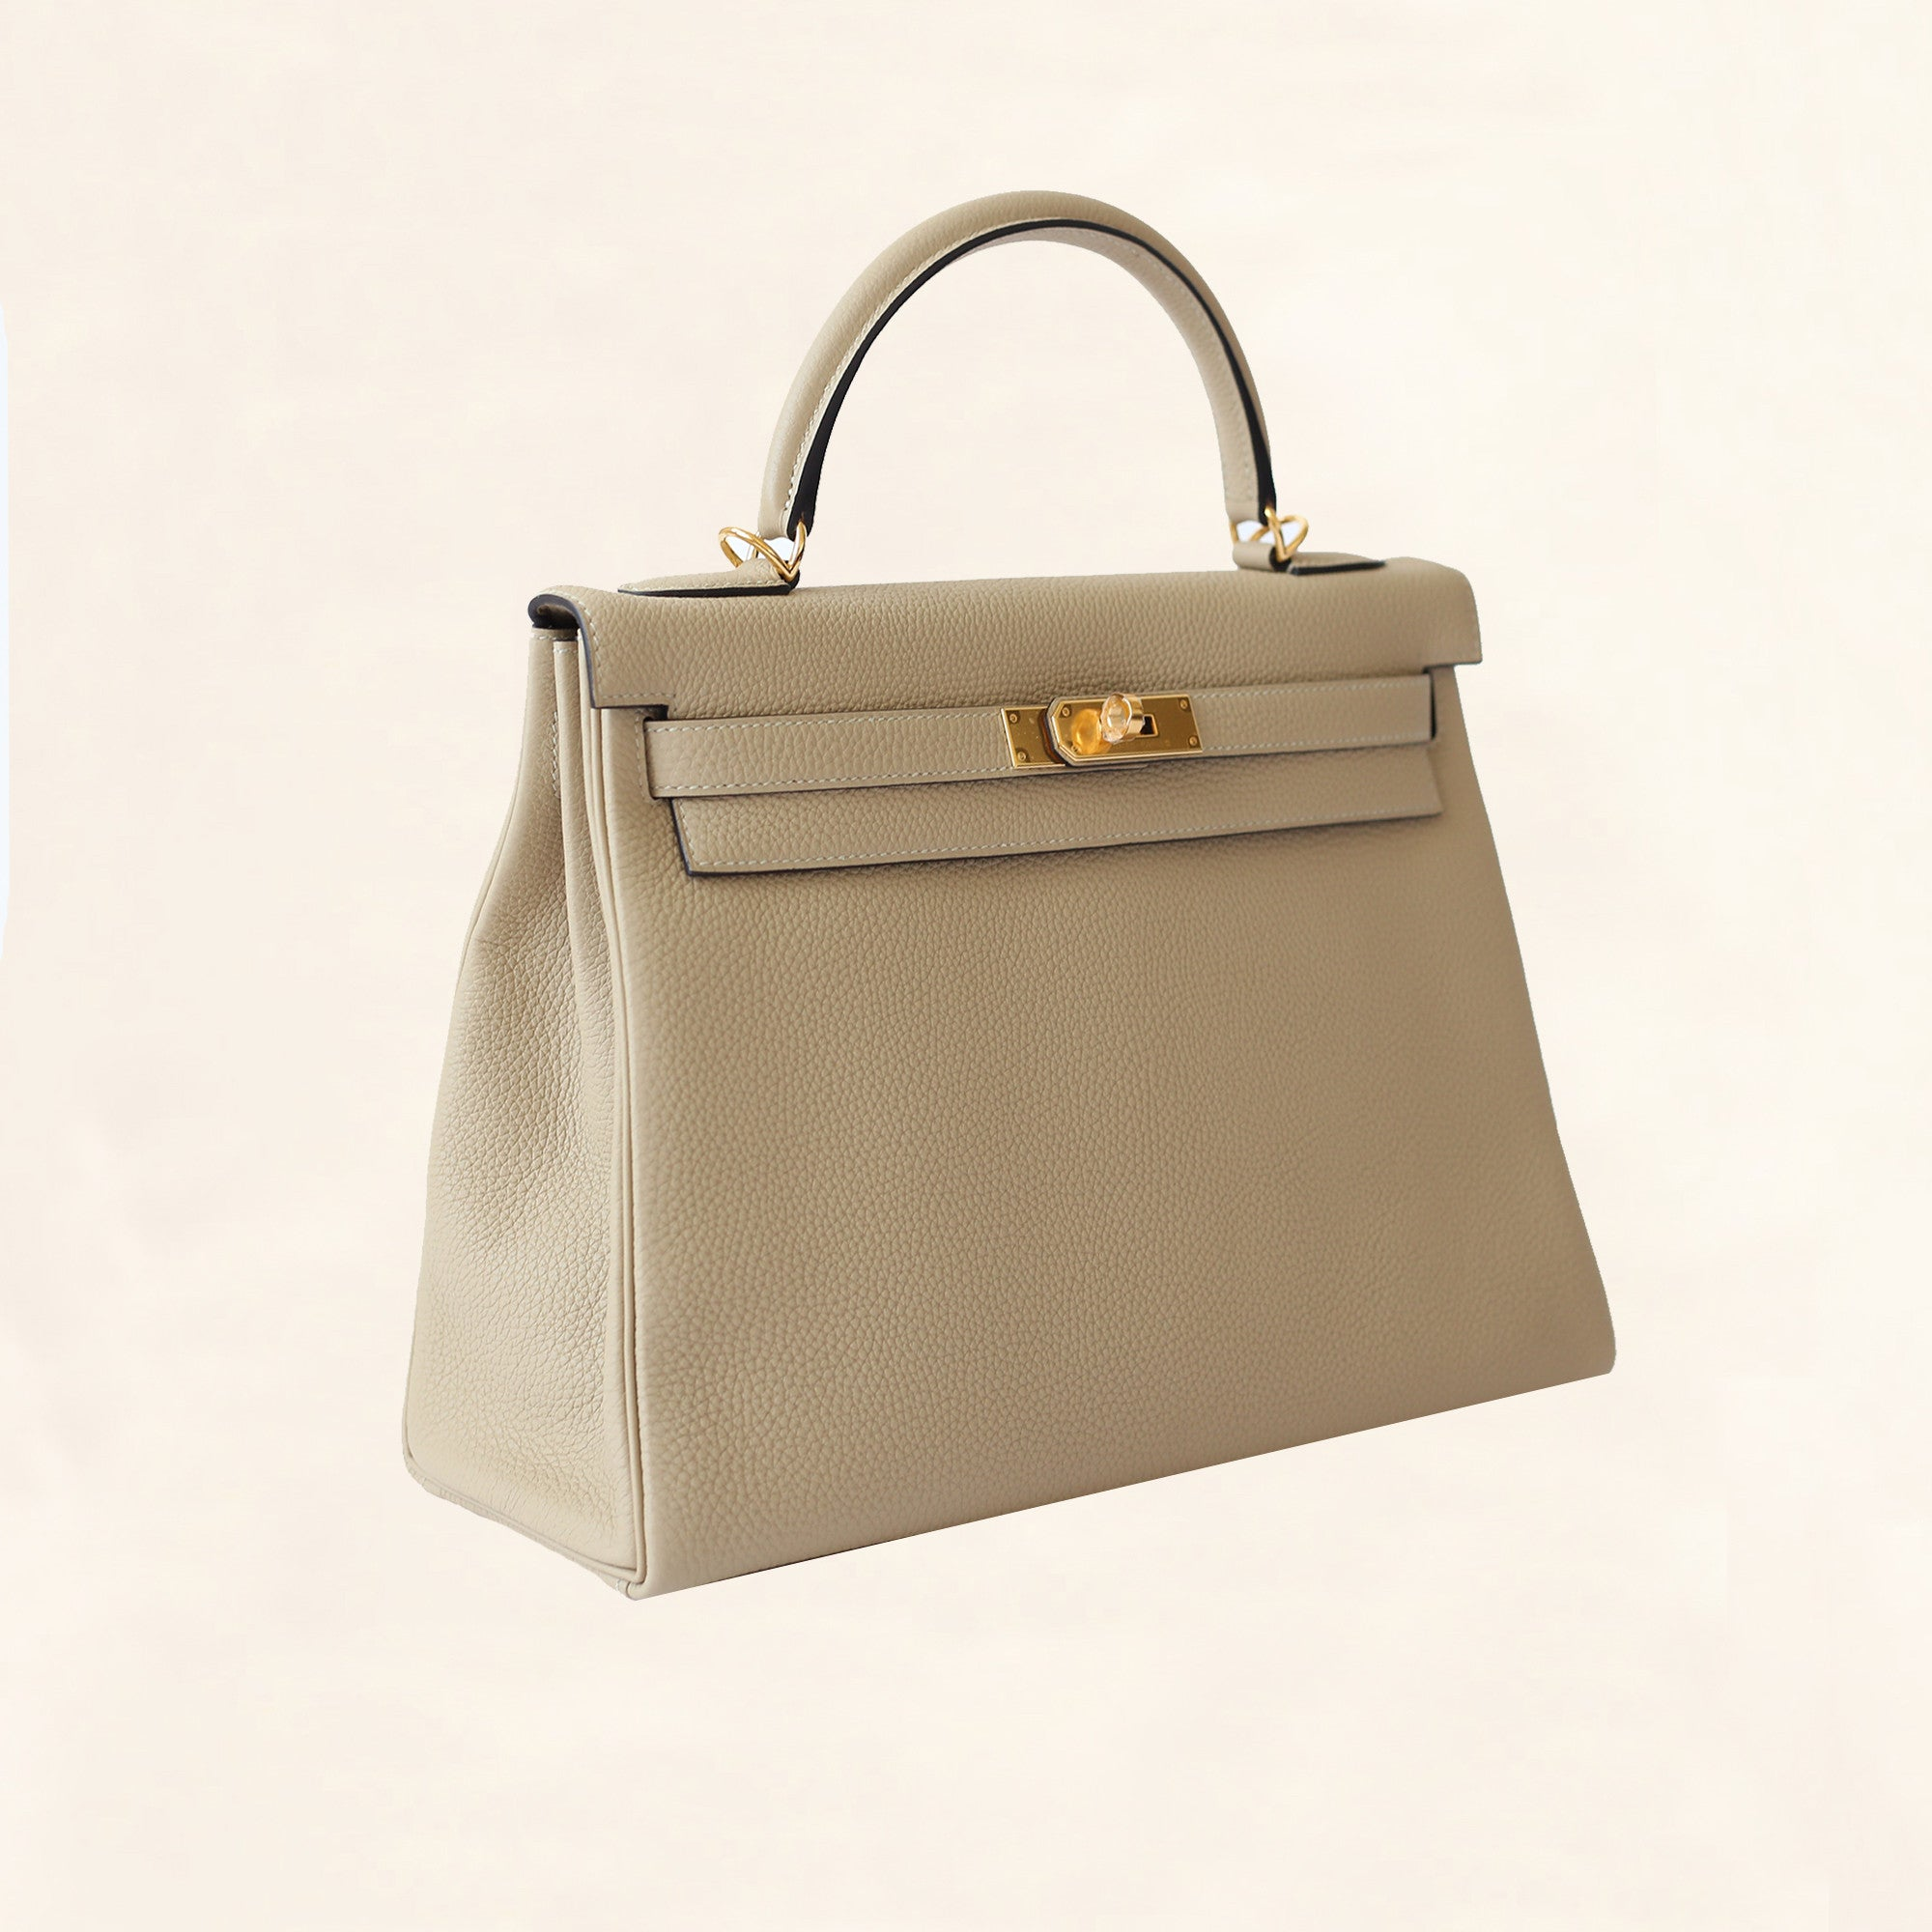 6b958e26dce06 ... france hermès trench togo retourne kelly gold hardware 32 the  collectory ff6c0 6aef8